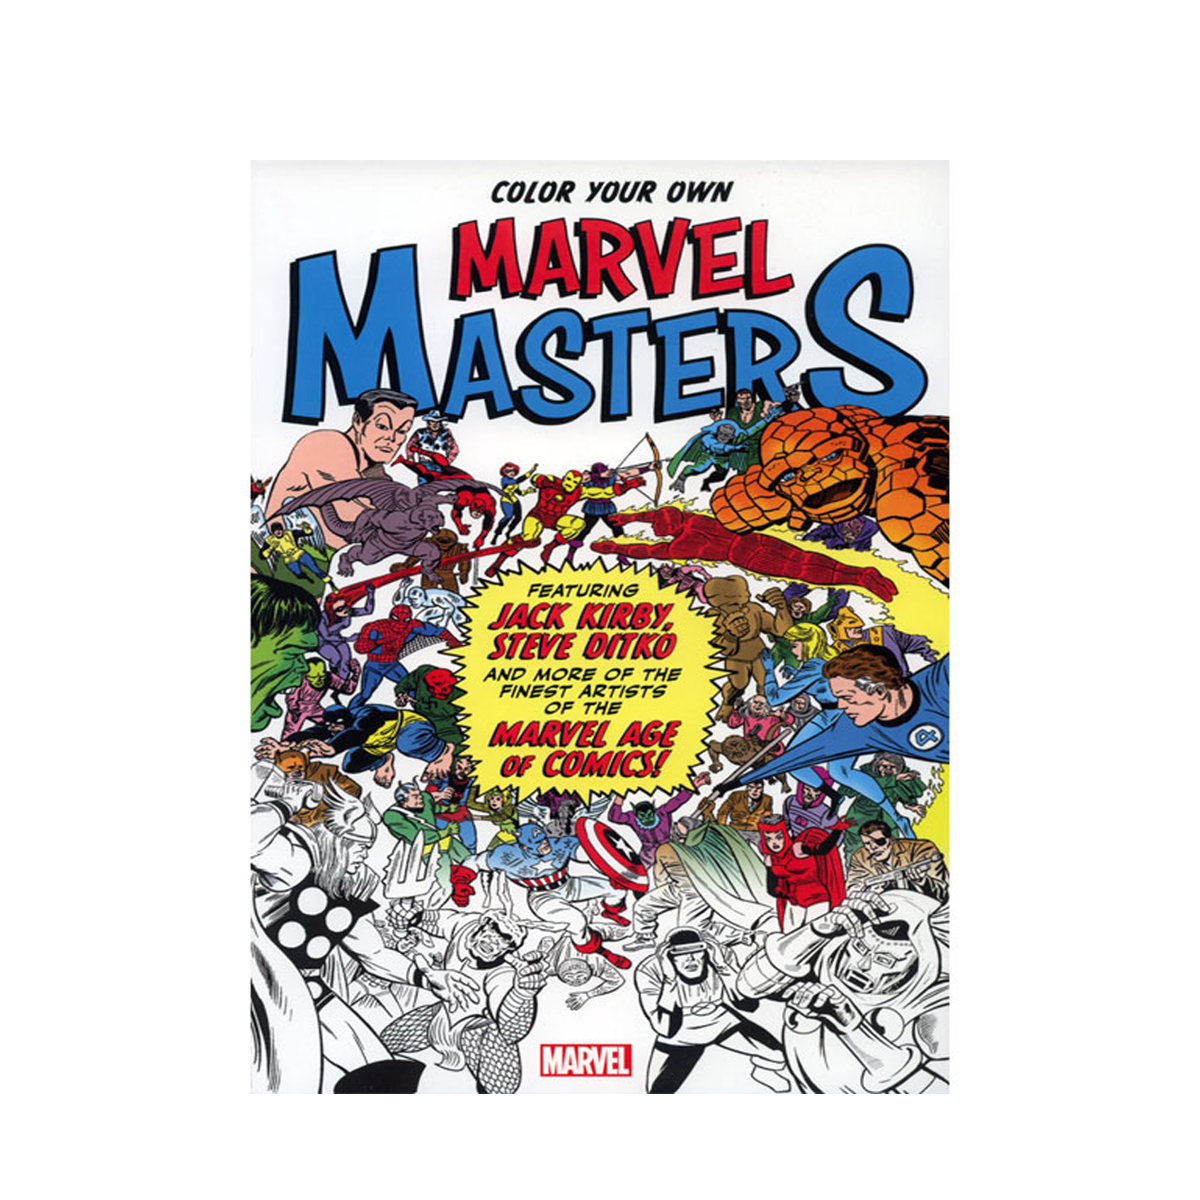 Good360 Donation Catalog Color Your Own Marvel Masters